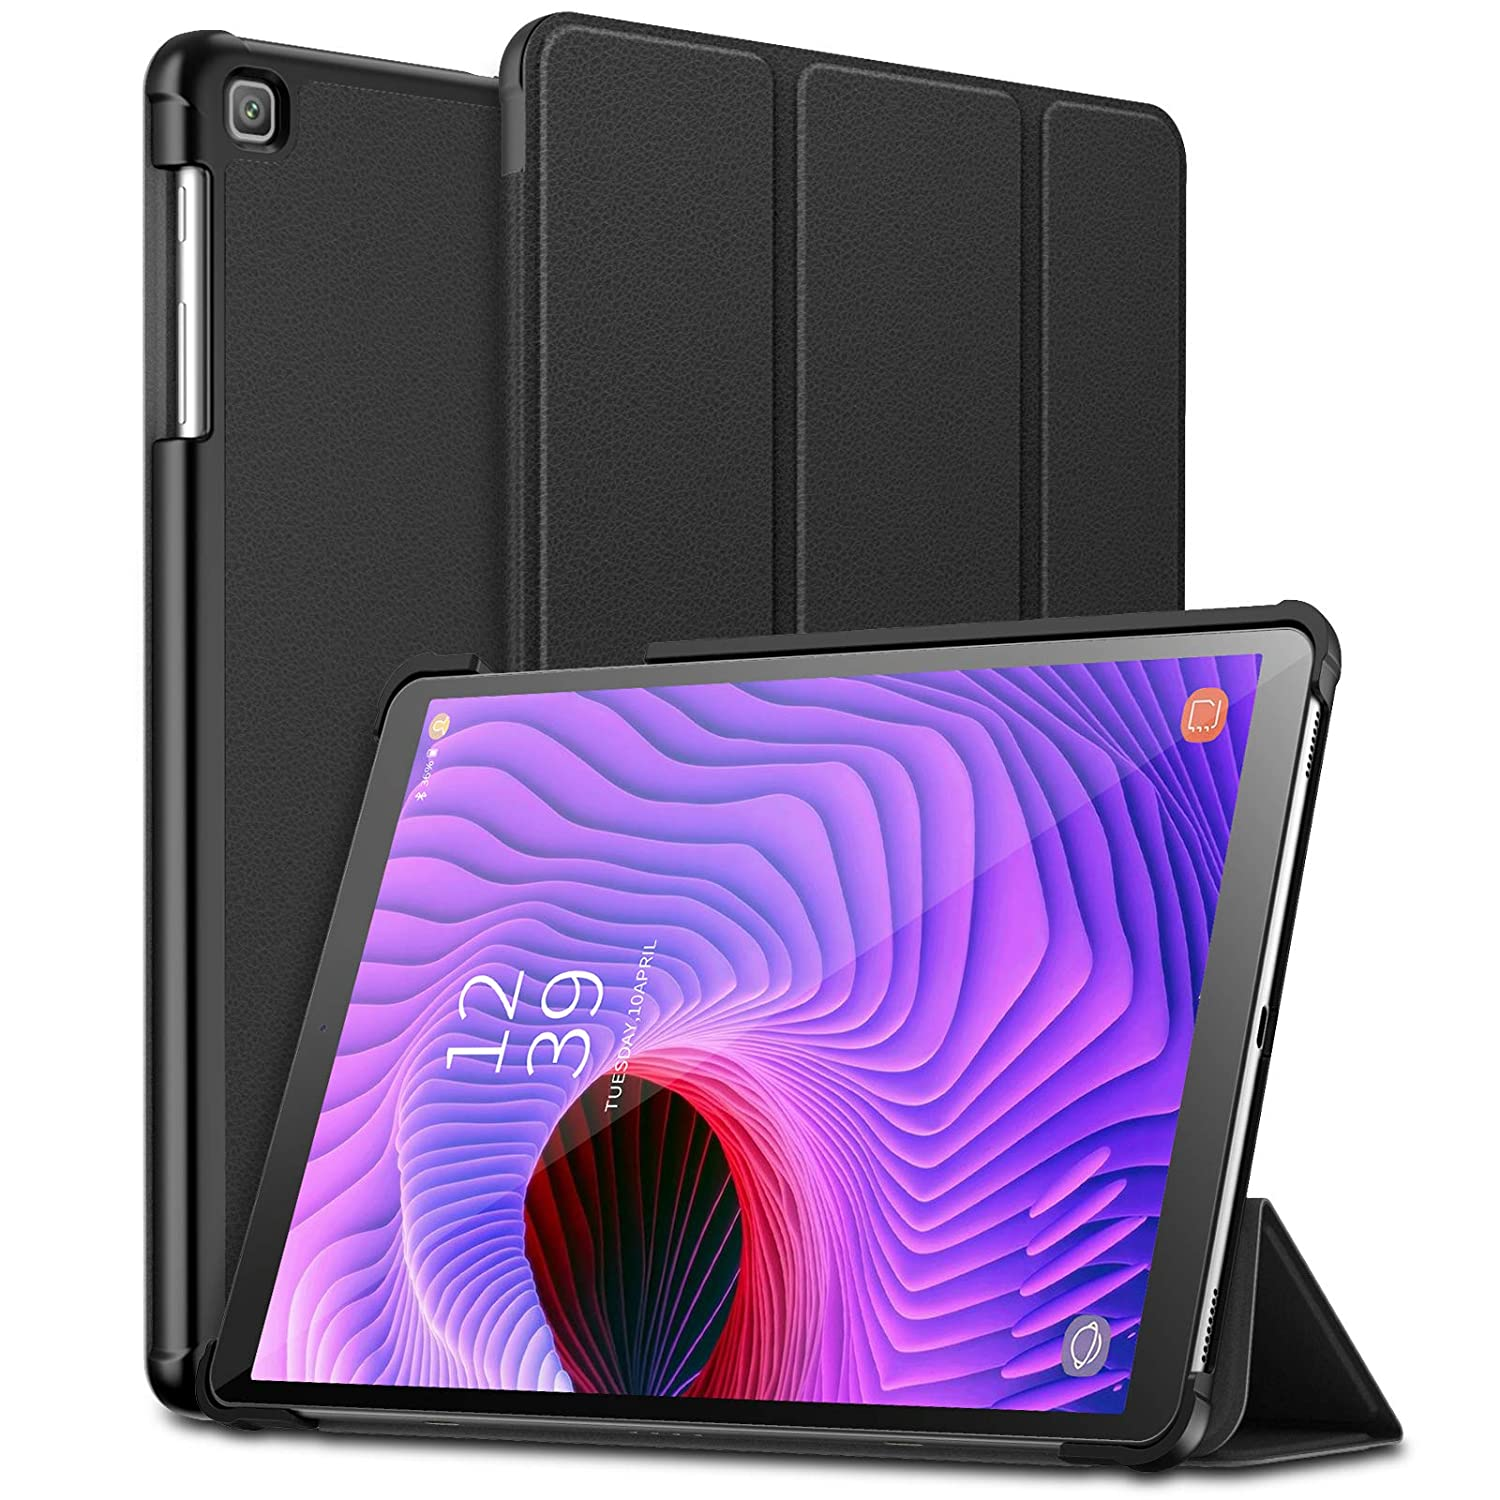 Infiland Samsung Galaxy Tab A 10.1 2019 Case, Ultra Slim Tri-Fold Shell Cover Compatible with Samsung Galaxy Tab A 10.1 Inch Model SM-T510/SM-T515 ...